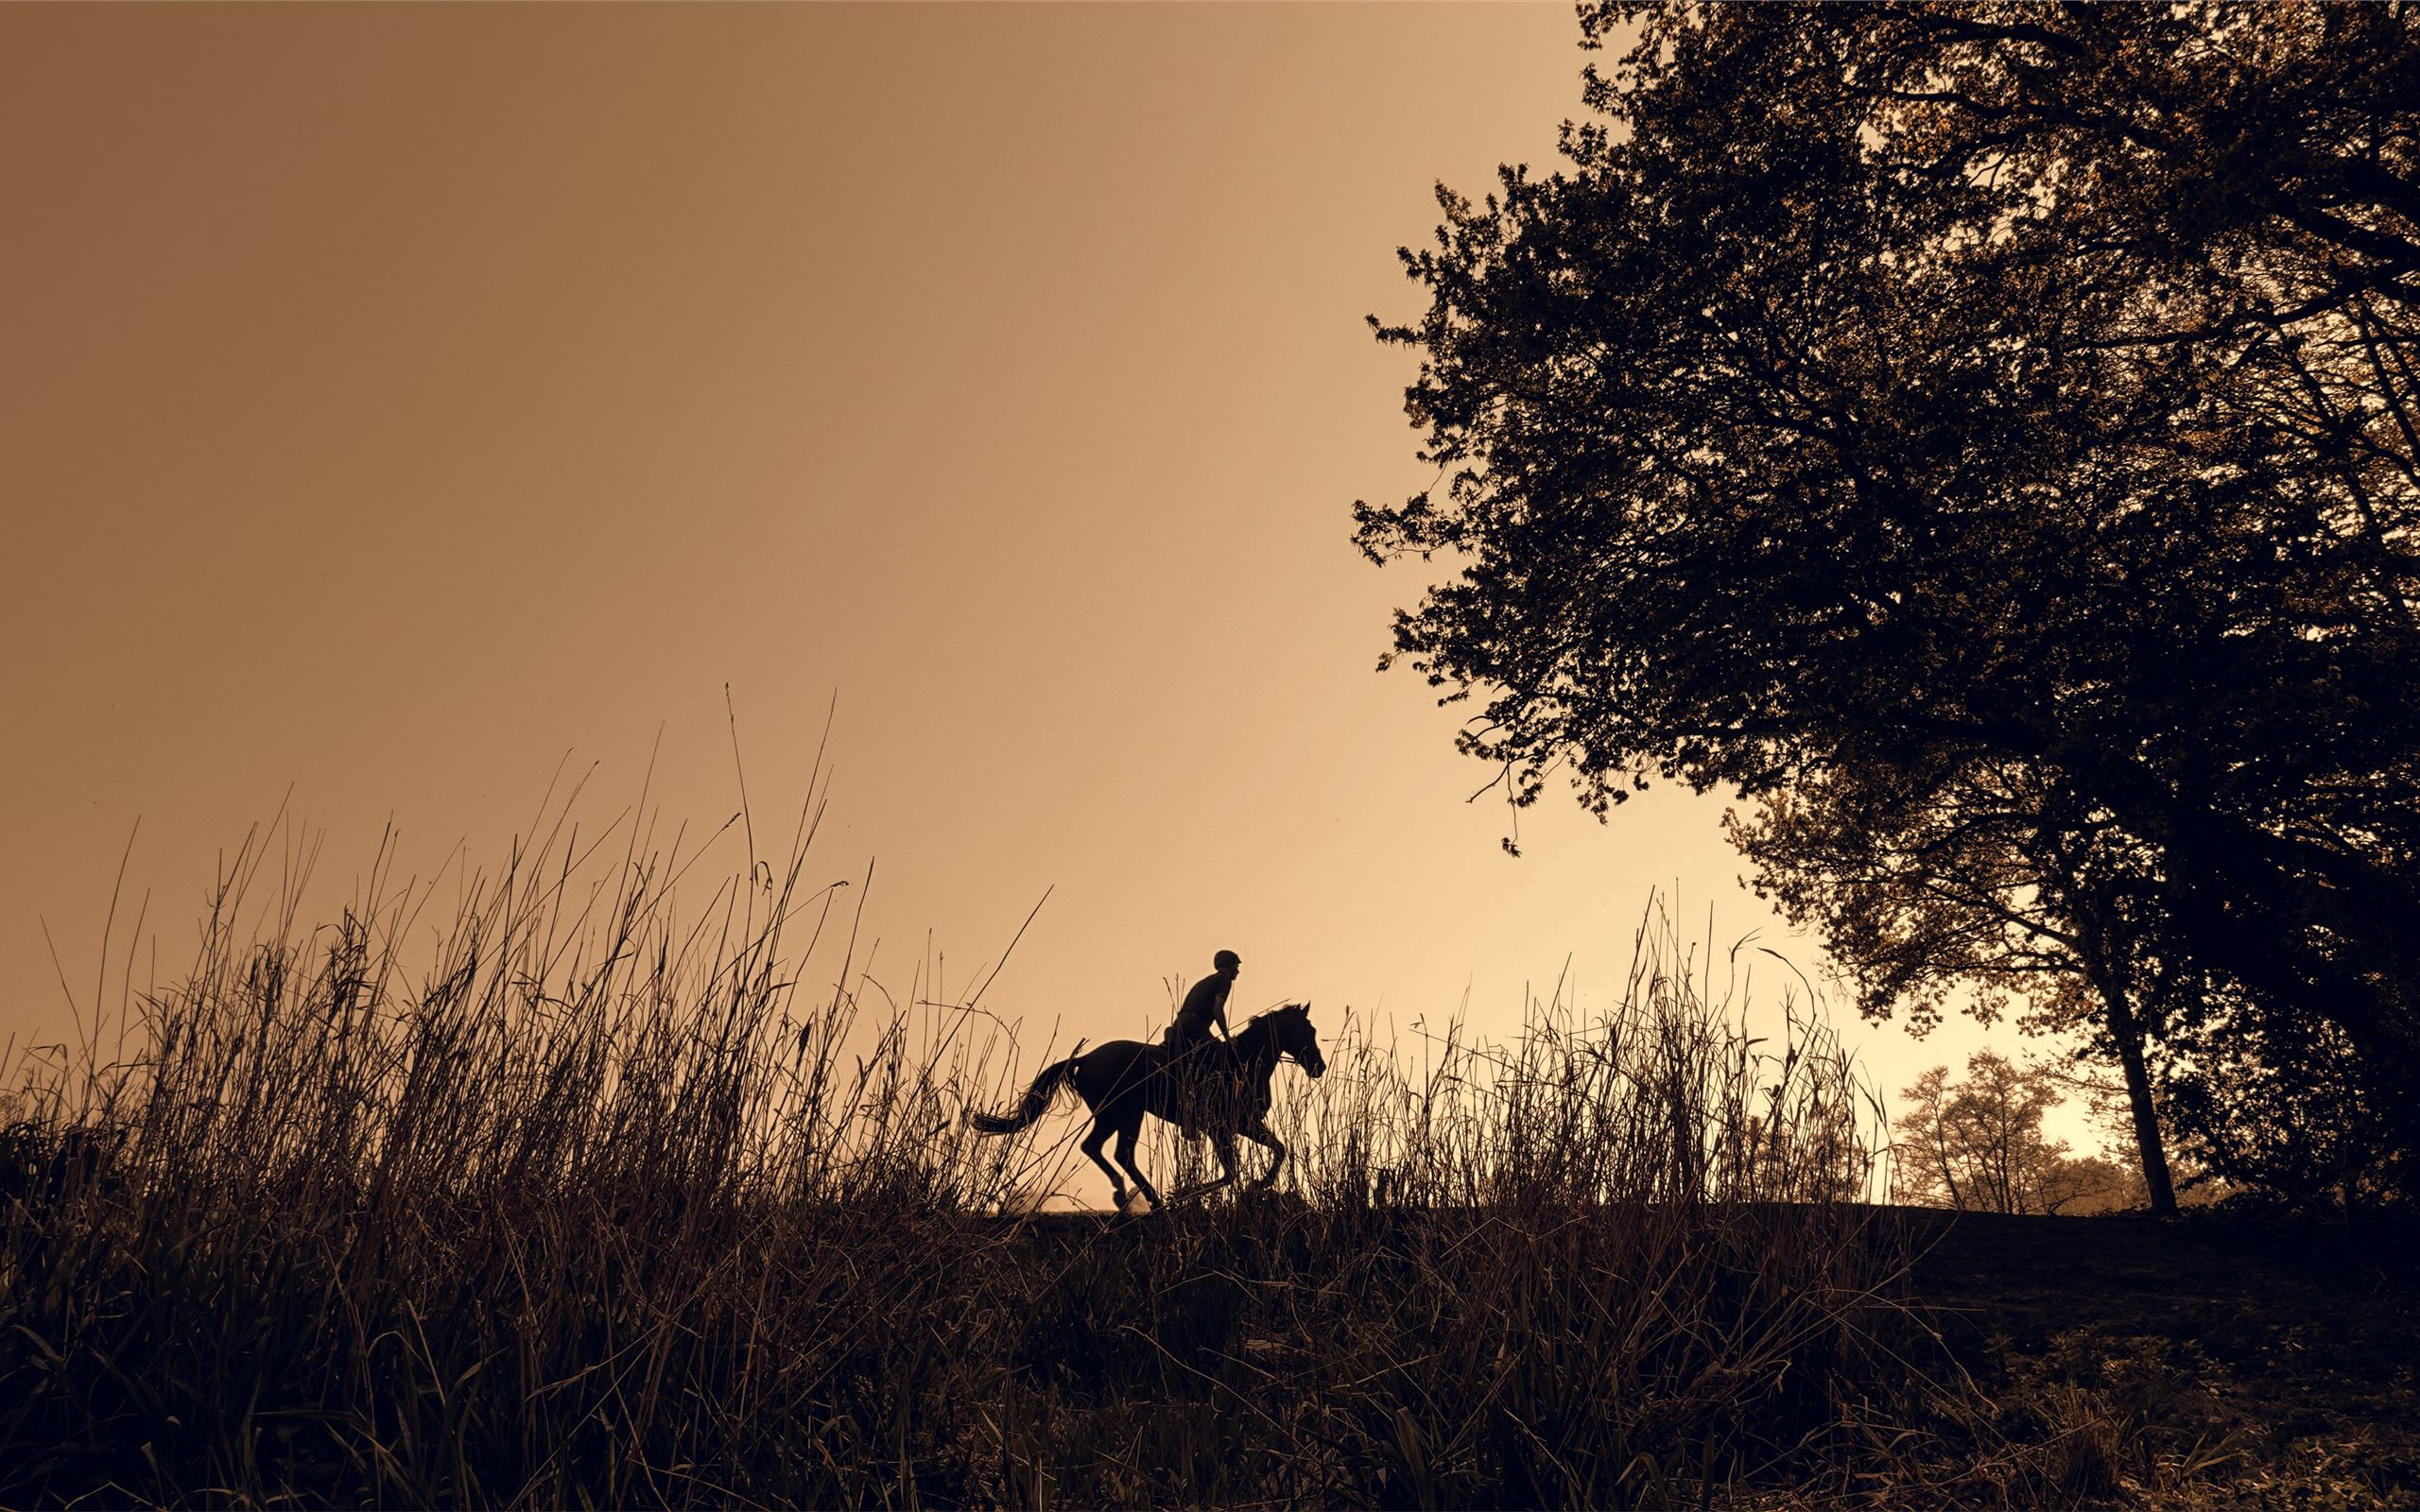 Silhouette Of Person Riding Horse Macbook Air Wallpaper Download Allmacwallpaper